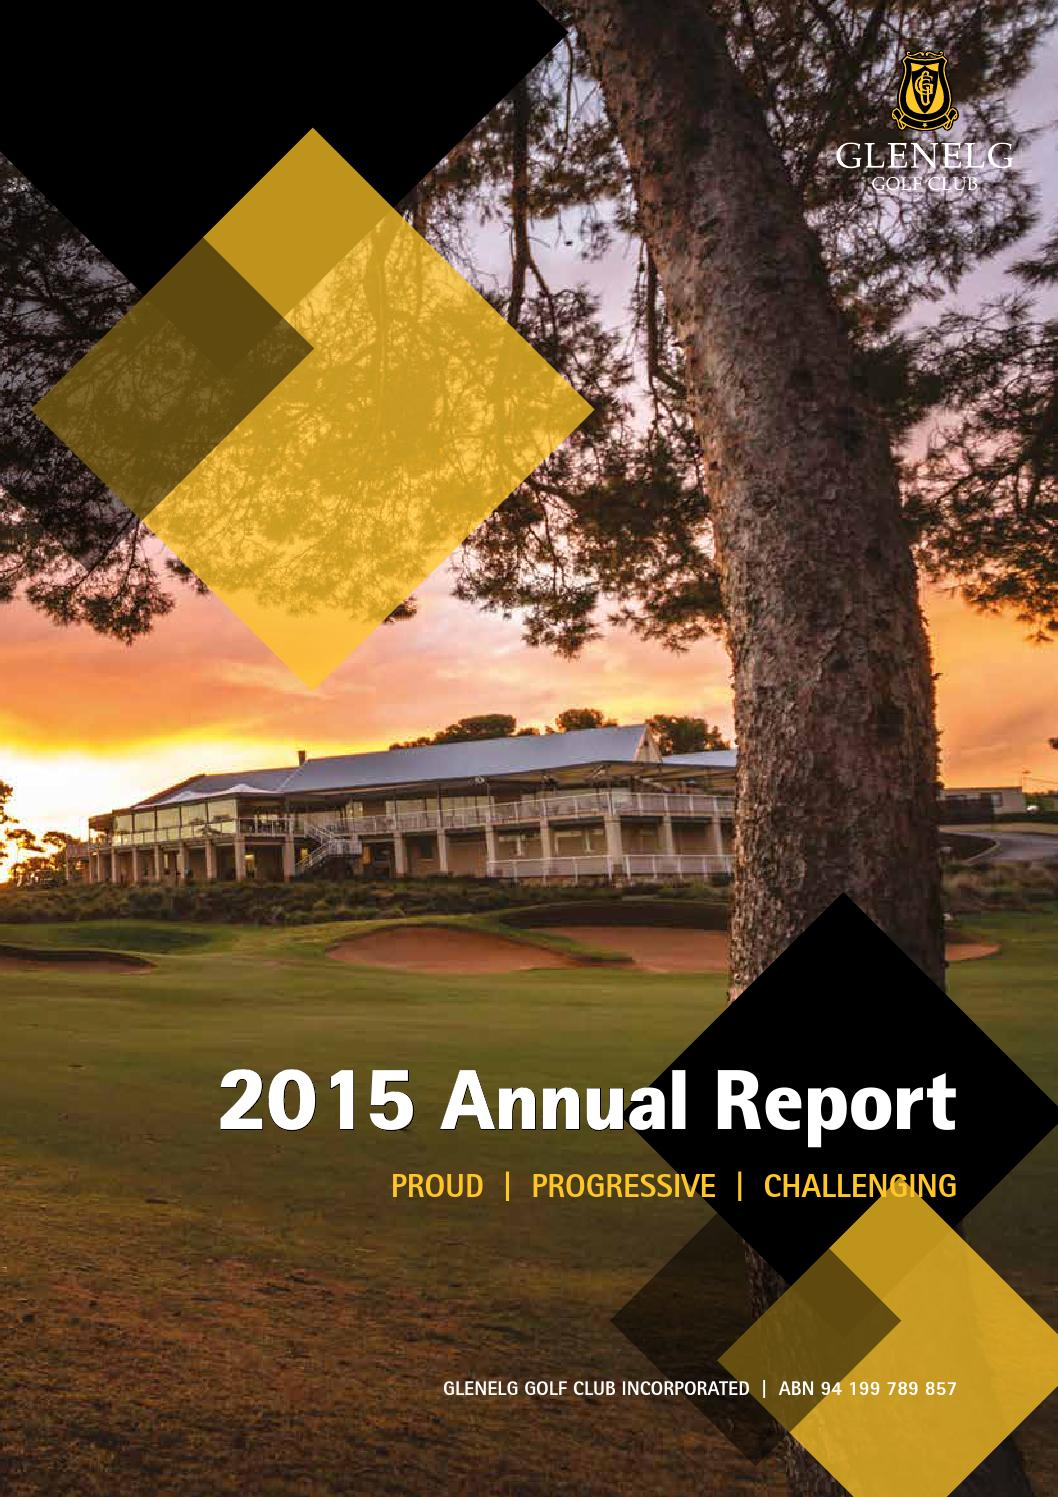 2015 annual report by glenelg golf club issuu. Black Bedroom Furniture Sets. Home Design Ideas